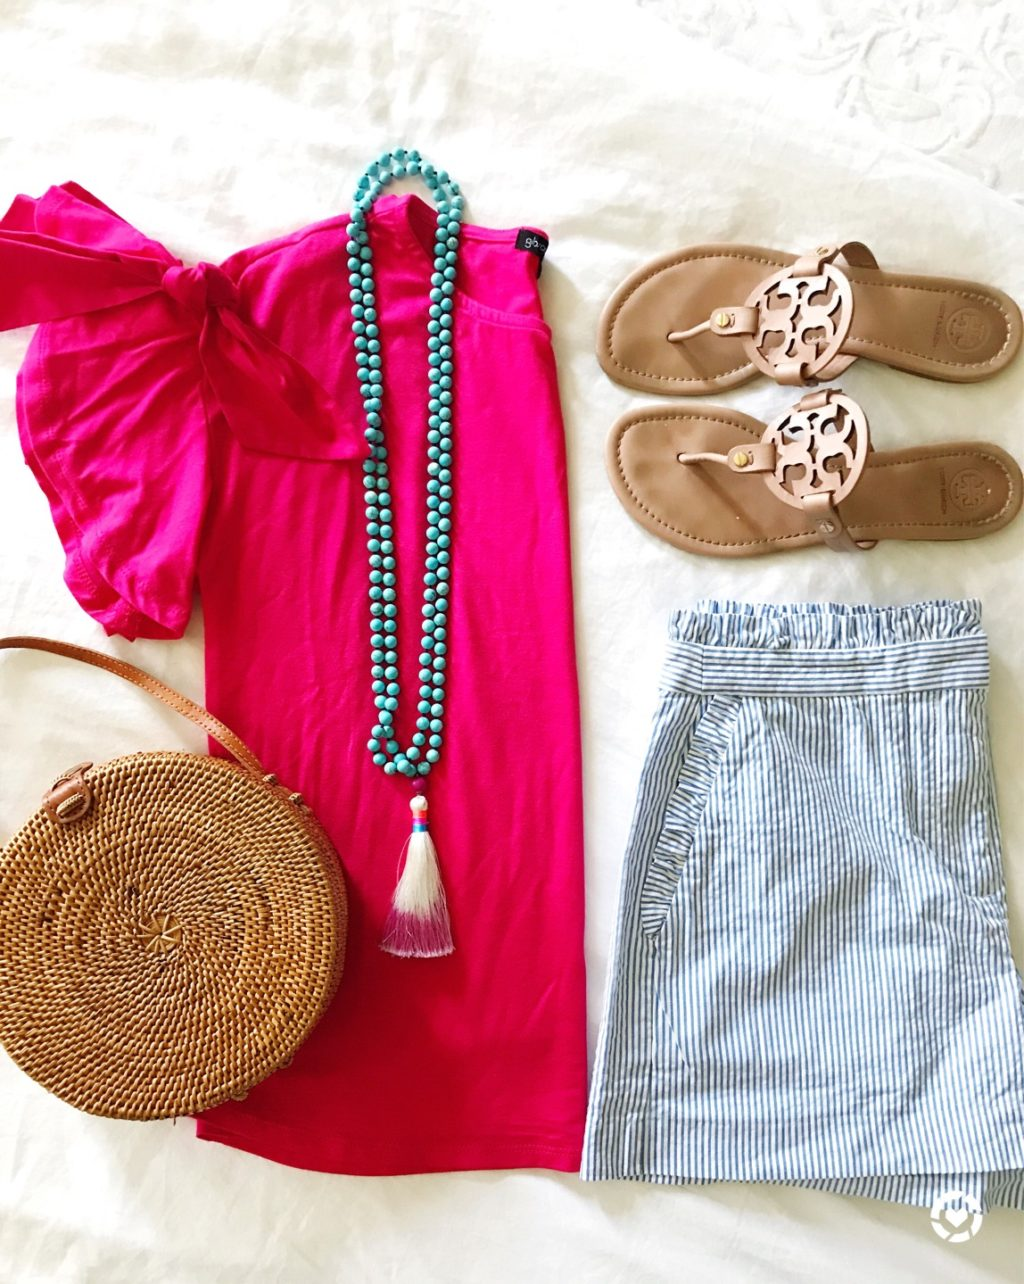 sugarplum style summer outfit